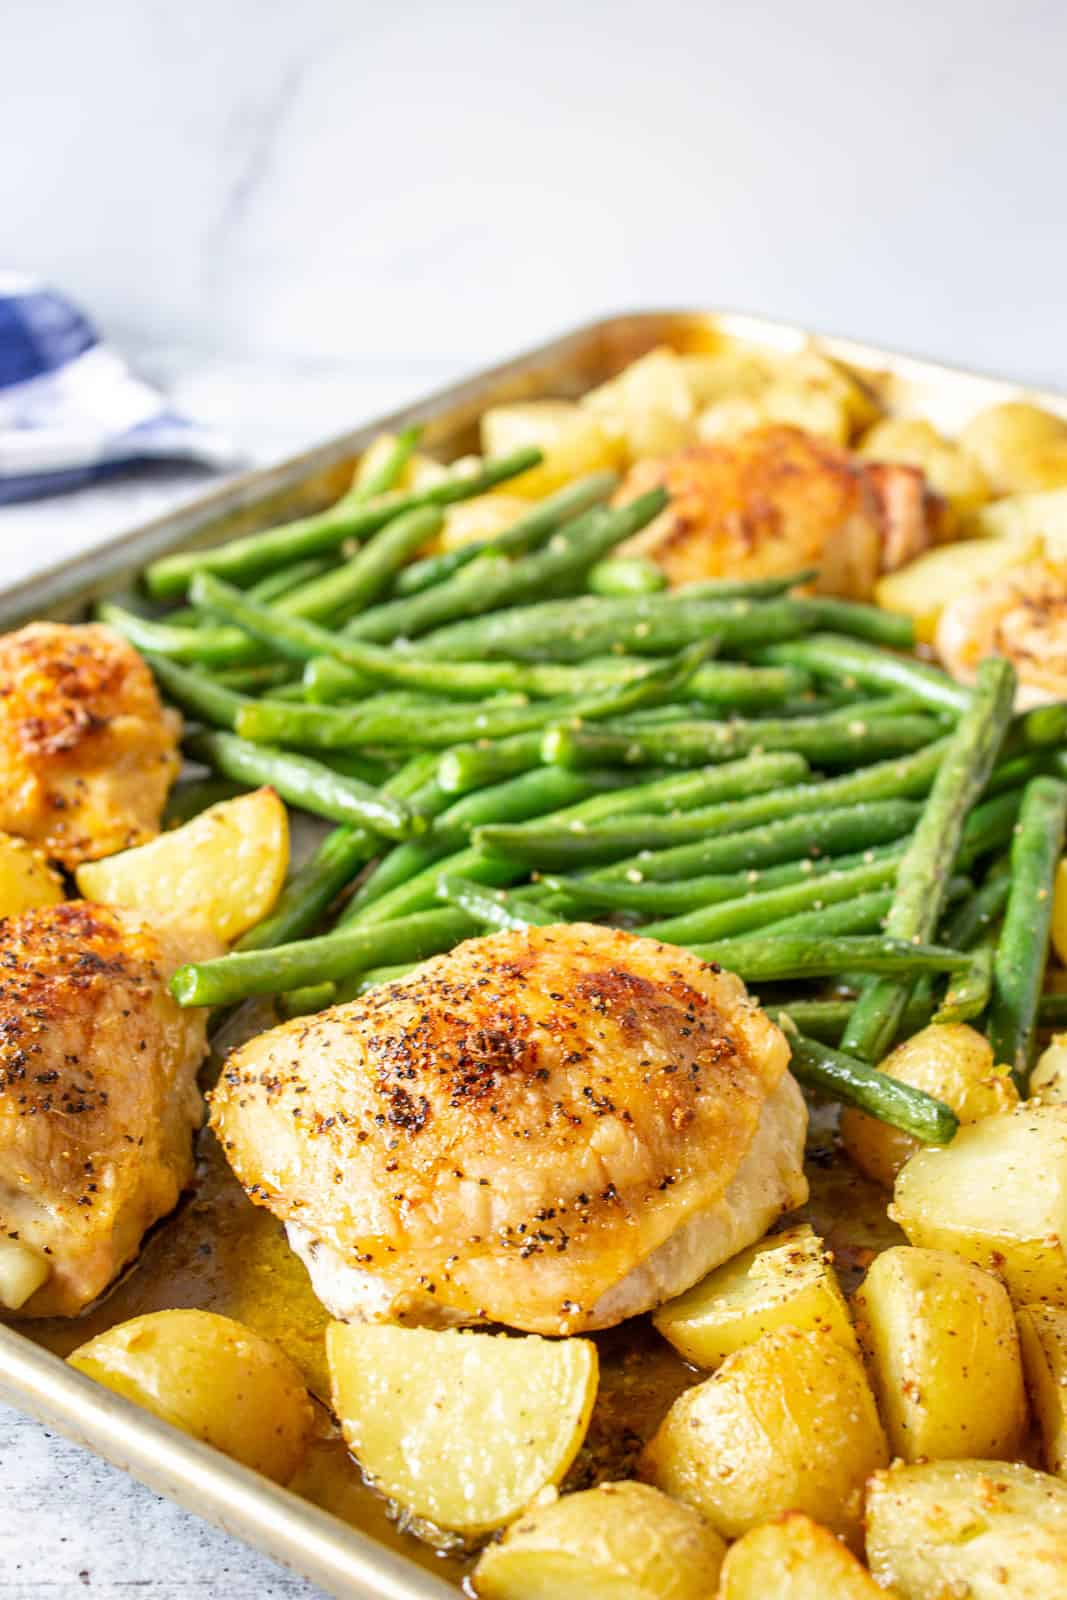 A sheet pan filled with baked chicken, potatoes, and green beans.